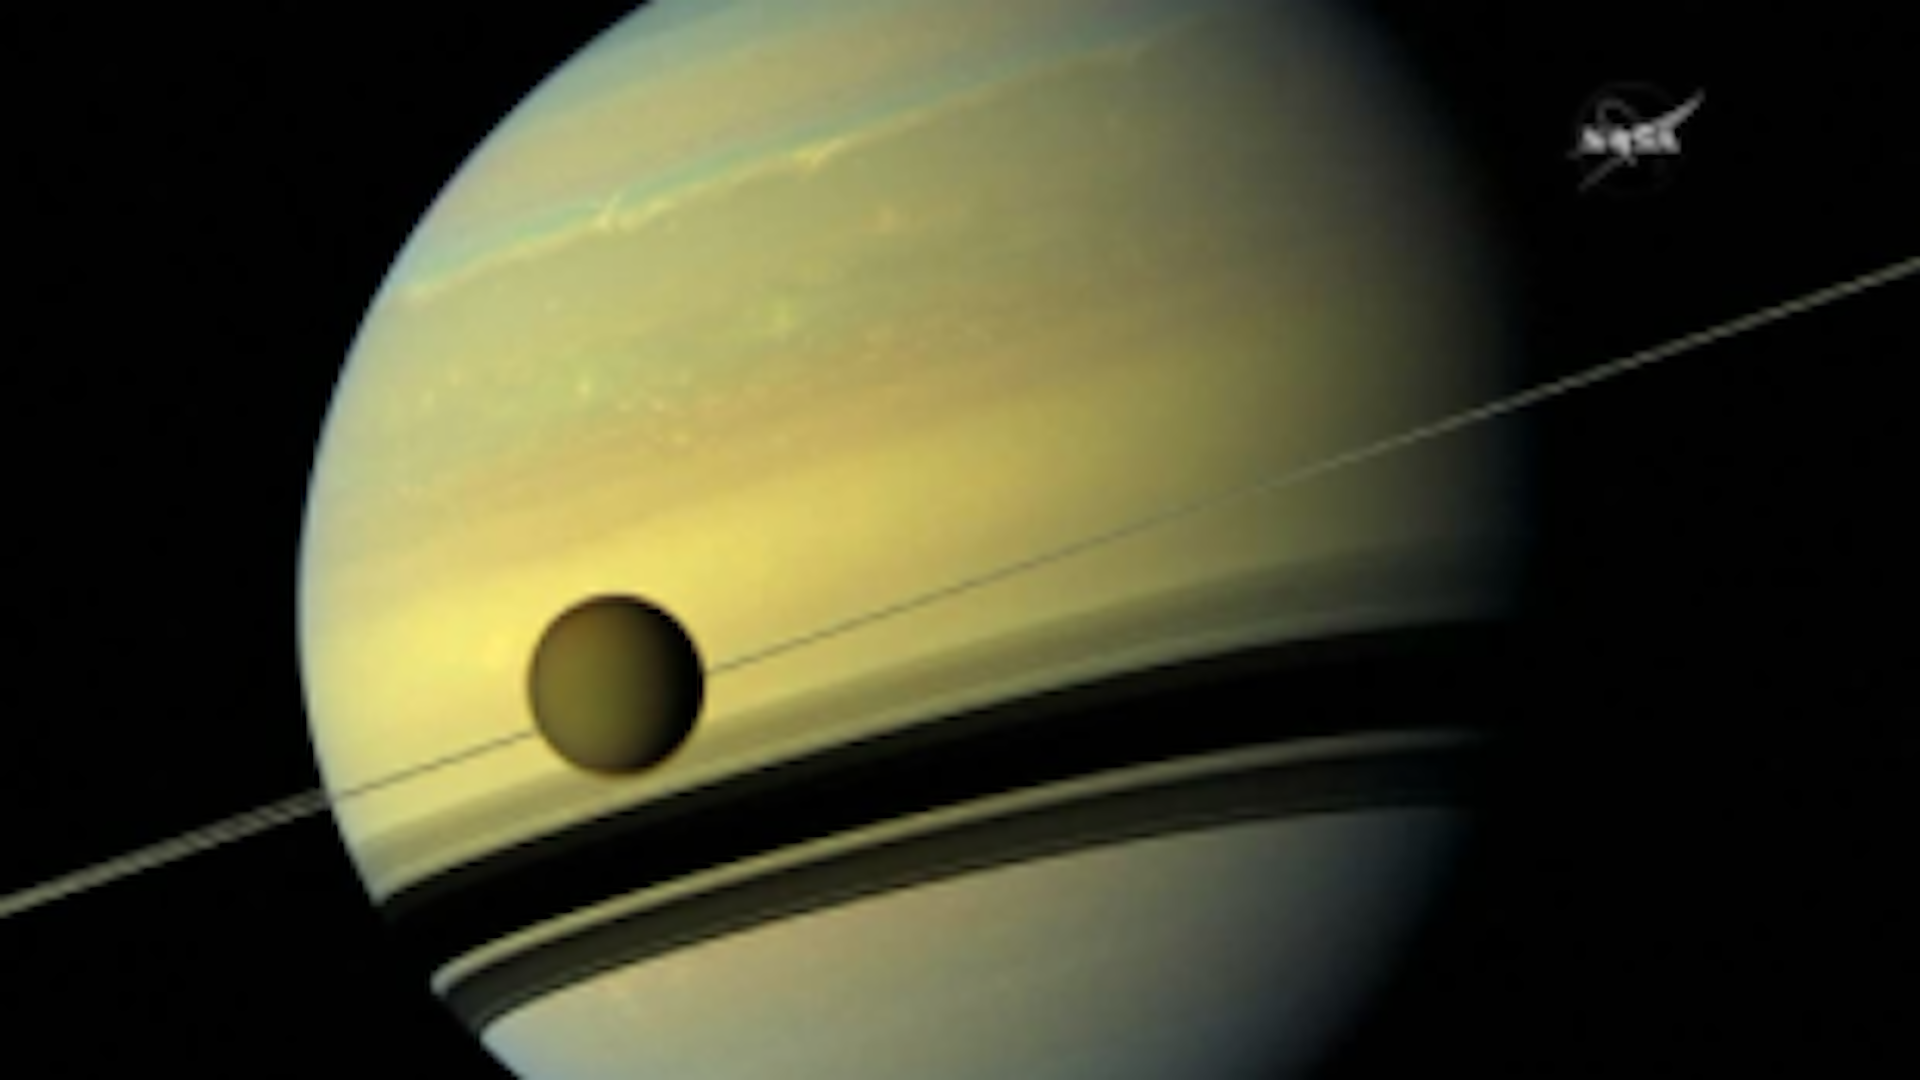 The Cassini spacecraft crashed into Saturn, ending a successful 20-year mission